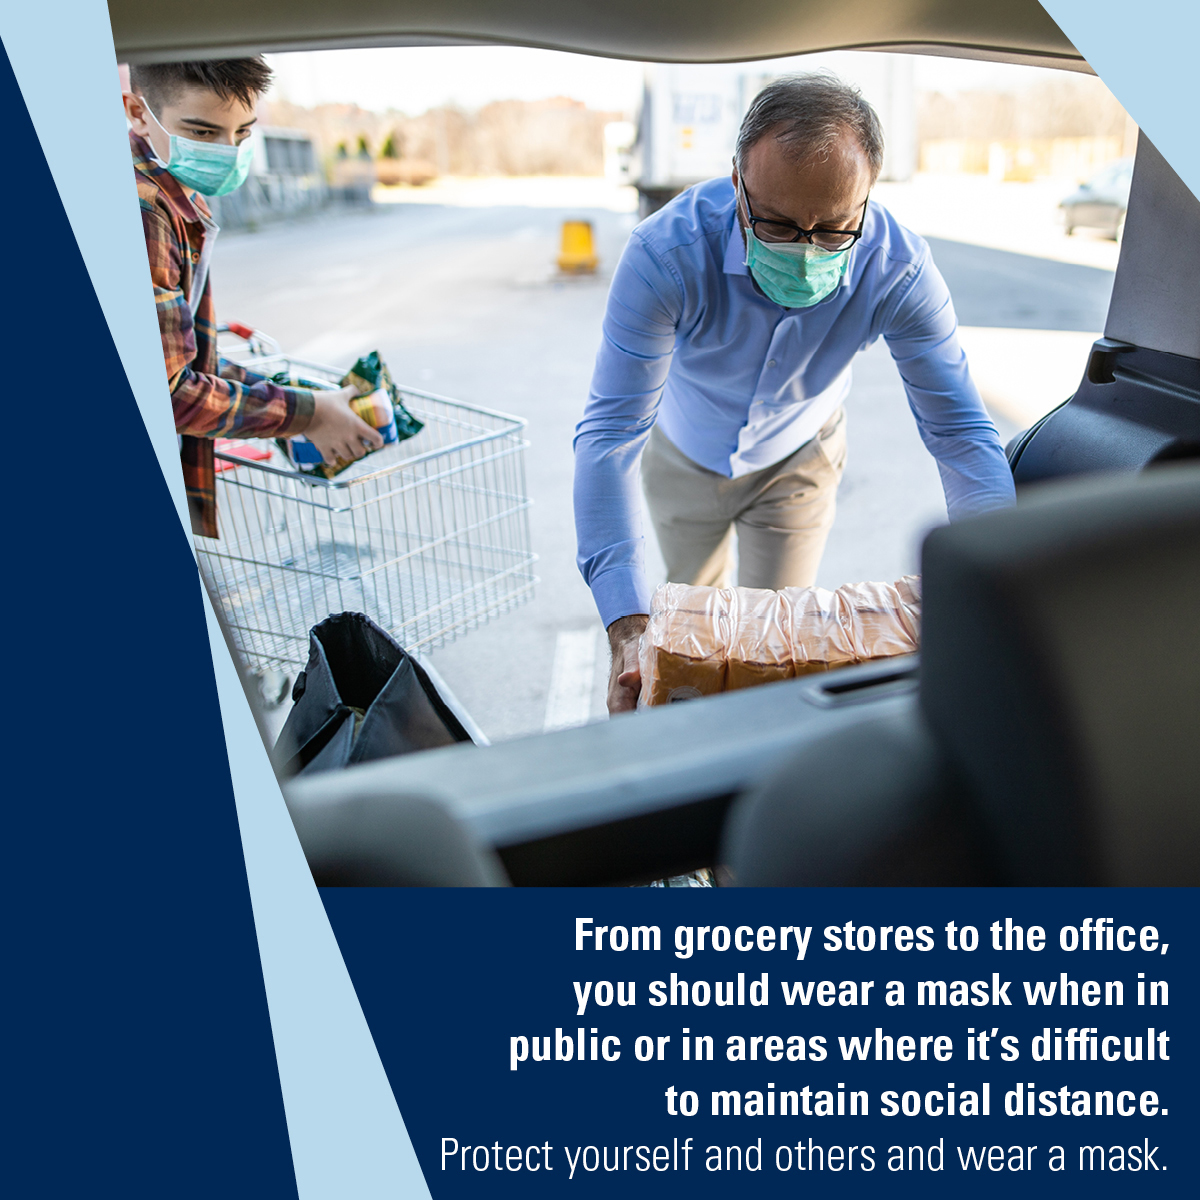 Adult and teen wearing masks load groceries from a shopping cart into a car. Caption: From your grocery stores to the office, you should wear a mask when in public or in areas where it's difficult to maintain social distance. Protect yourself and others and wear a mask.